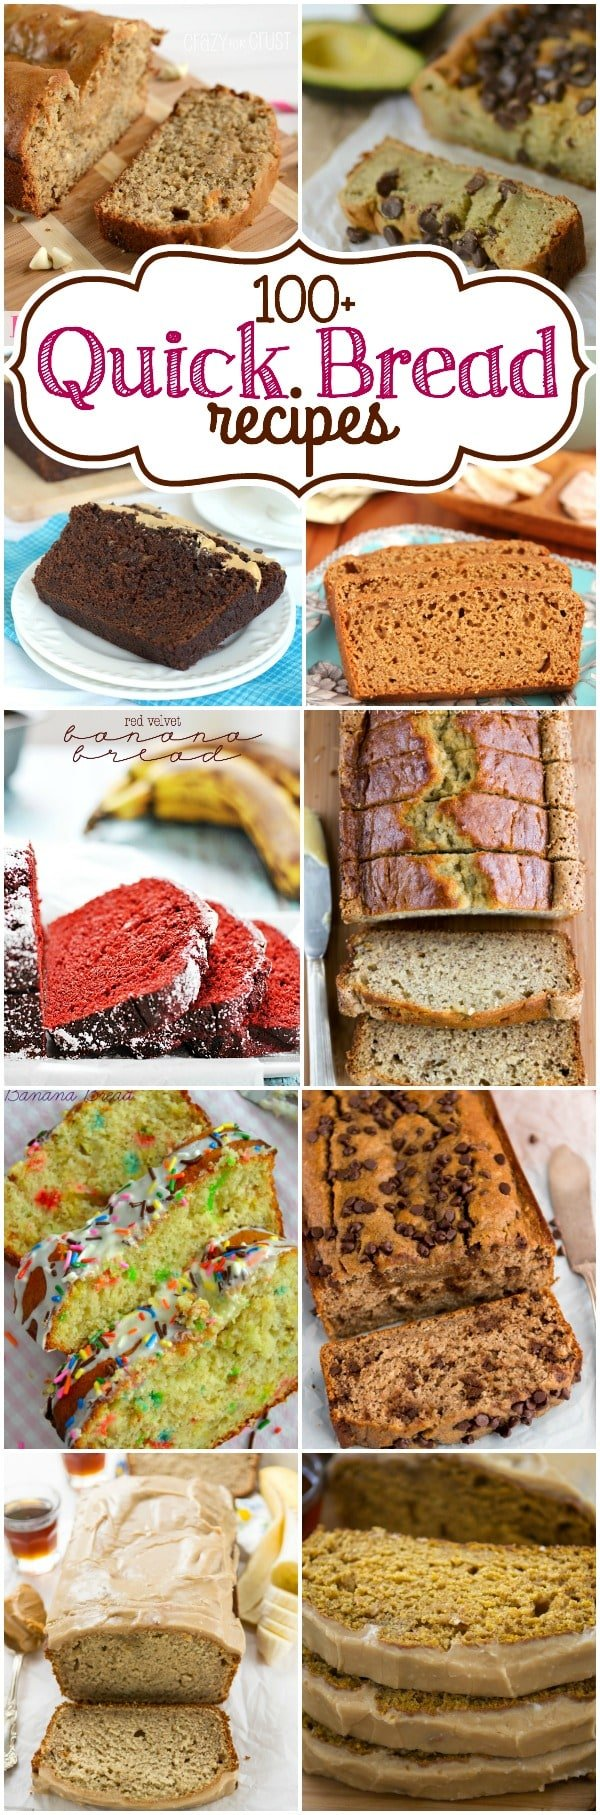 Over 100 Quick Bread Recipes from your favorite bloggers. Find banana, pumpkin, chocolate, lemon and so many more quick bread recipes!